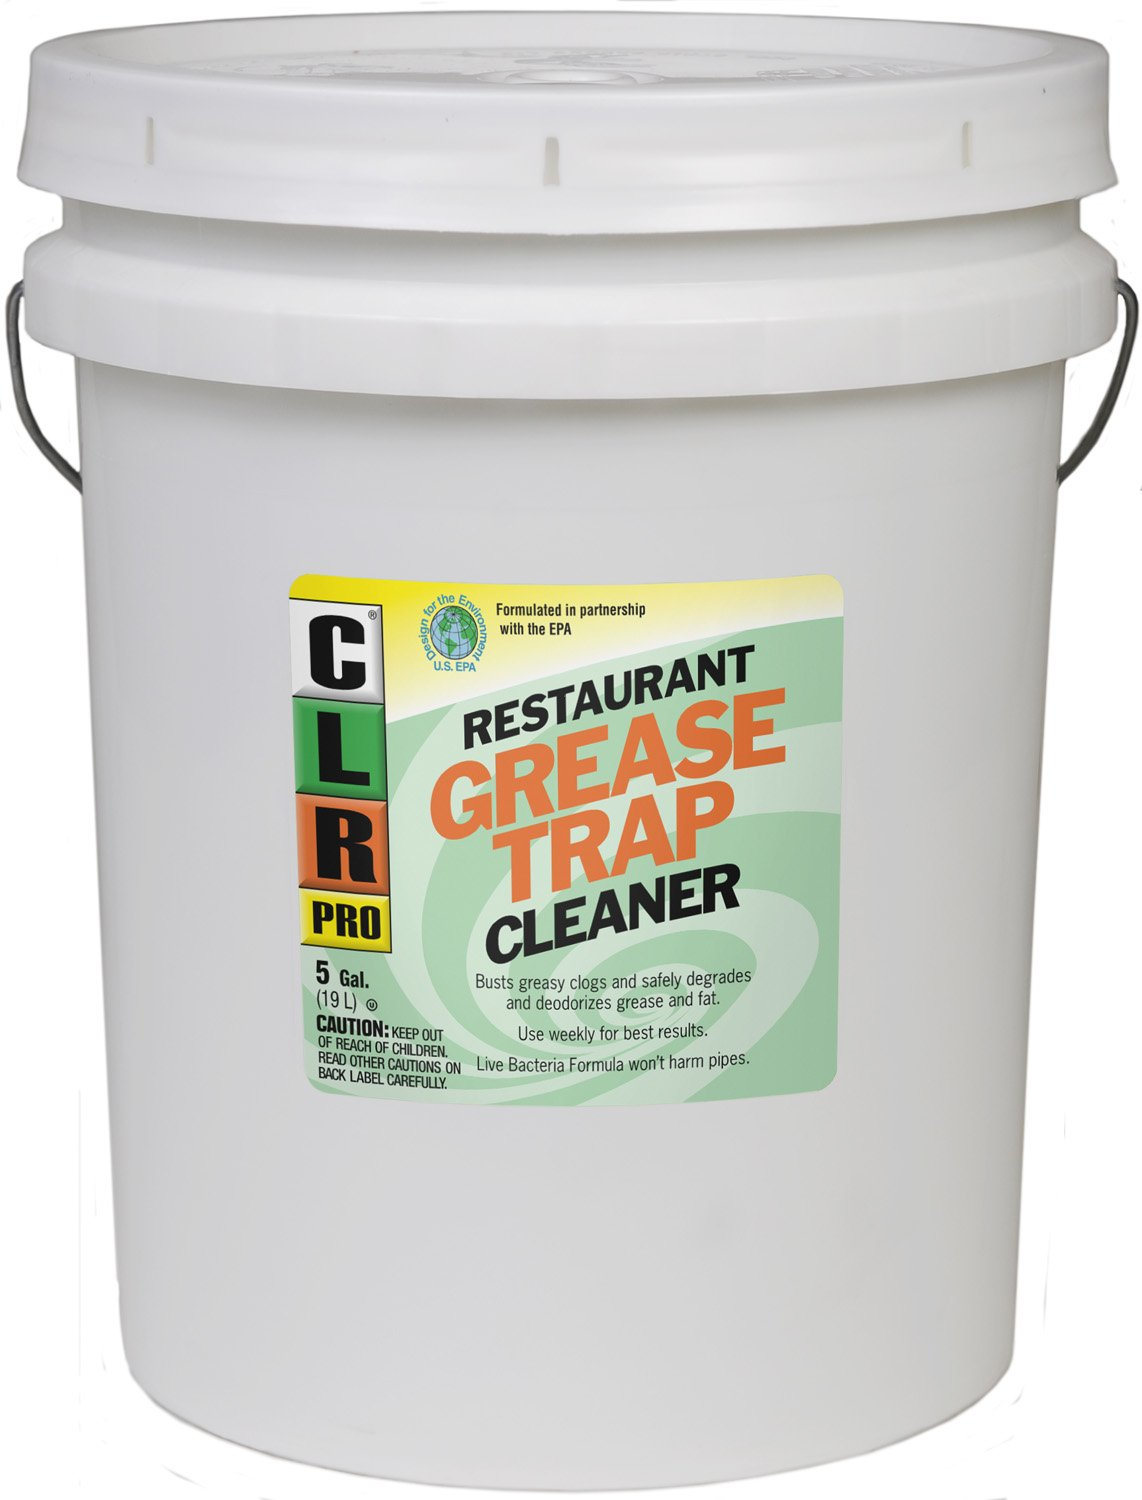 CLR Pro GRT-5Pro Commercial Drain Line and Grease Trap Treatment, 5 Gallon Pail by CLR (Image #1)